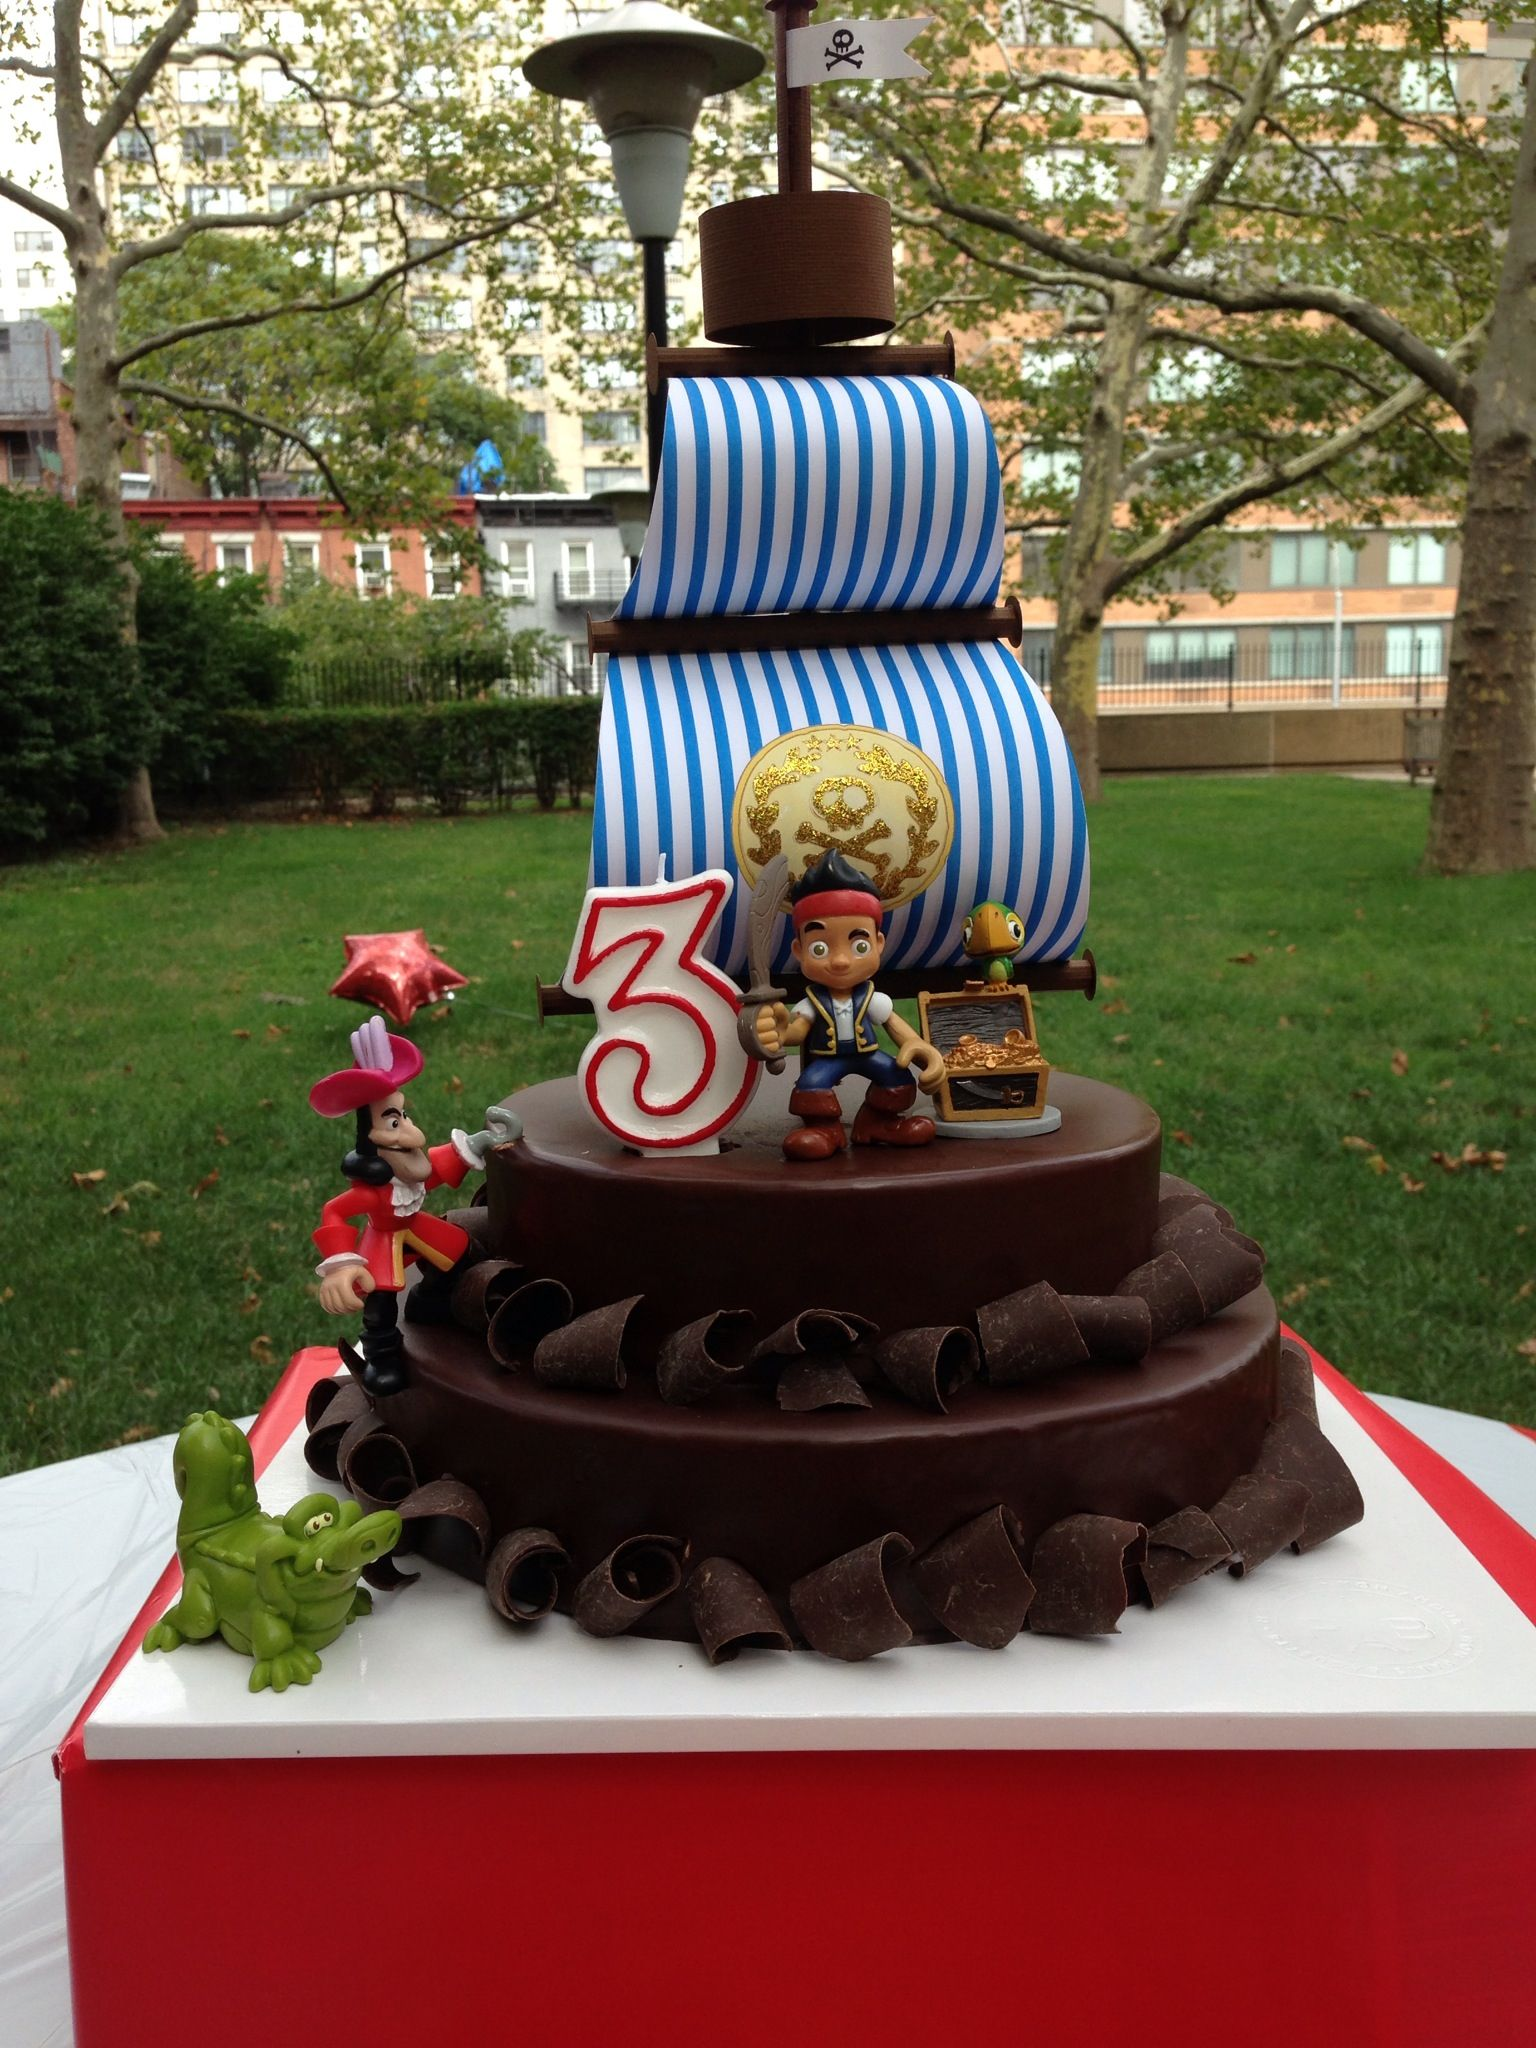 Stupendous Jake And The Neverland Pirates Cake Topper Made Out Of Paper And Funny Birthday Cards Online Elaedamsfinfo